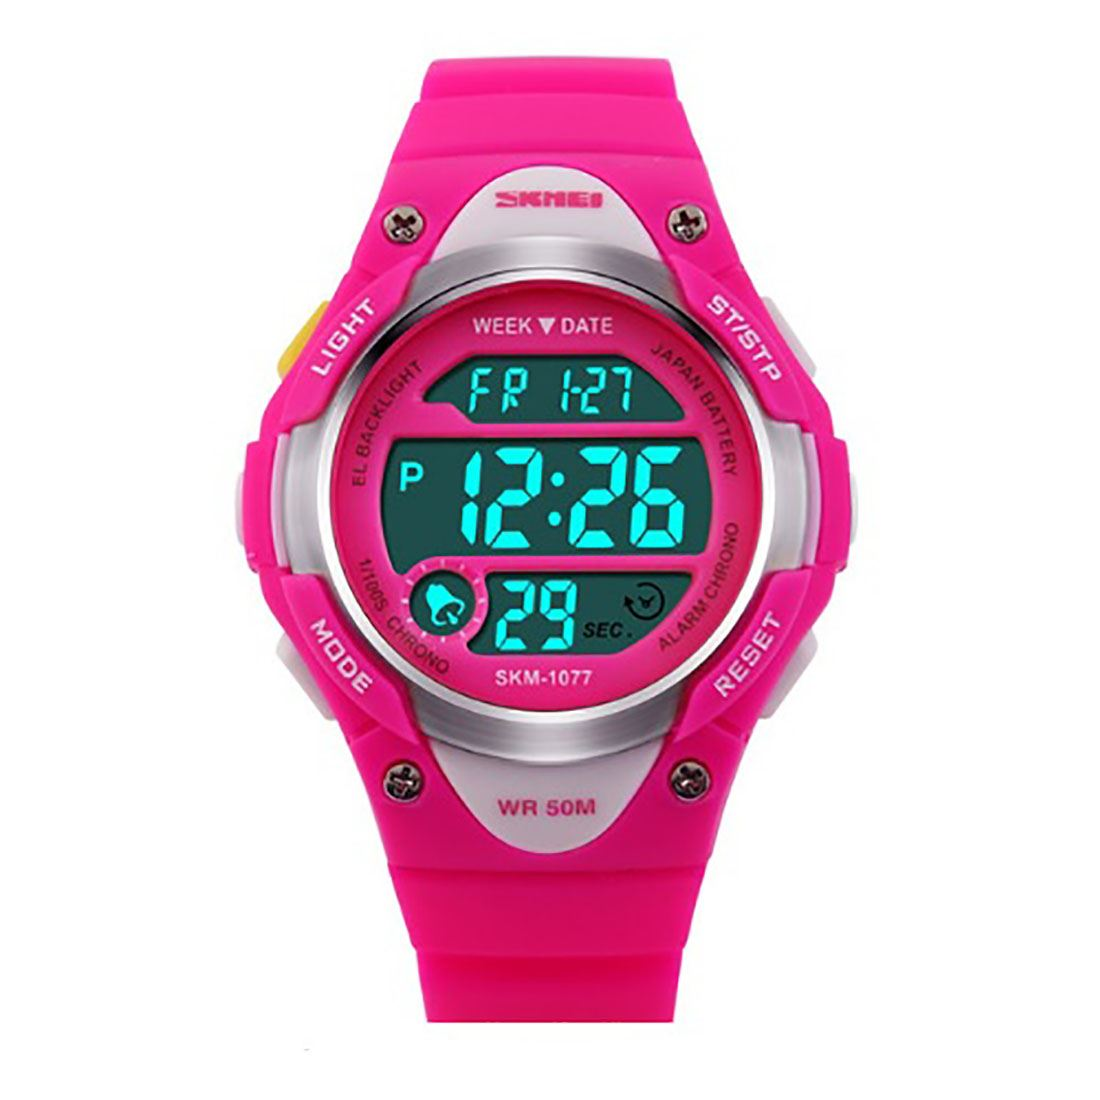 Boys-And-Girls-Pink-Blue-Digital-Watch-With-Stopwatch-Alarm-Light-Ages-6-13